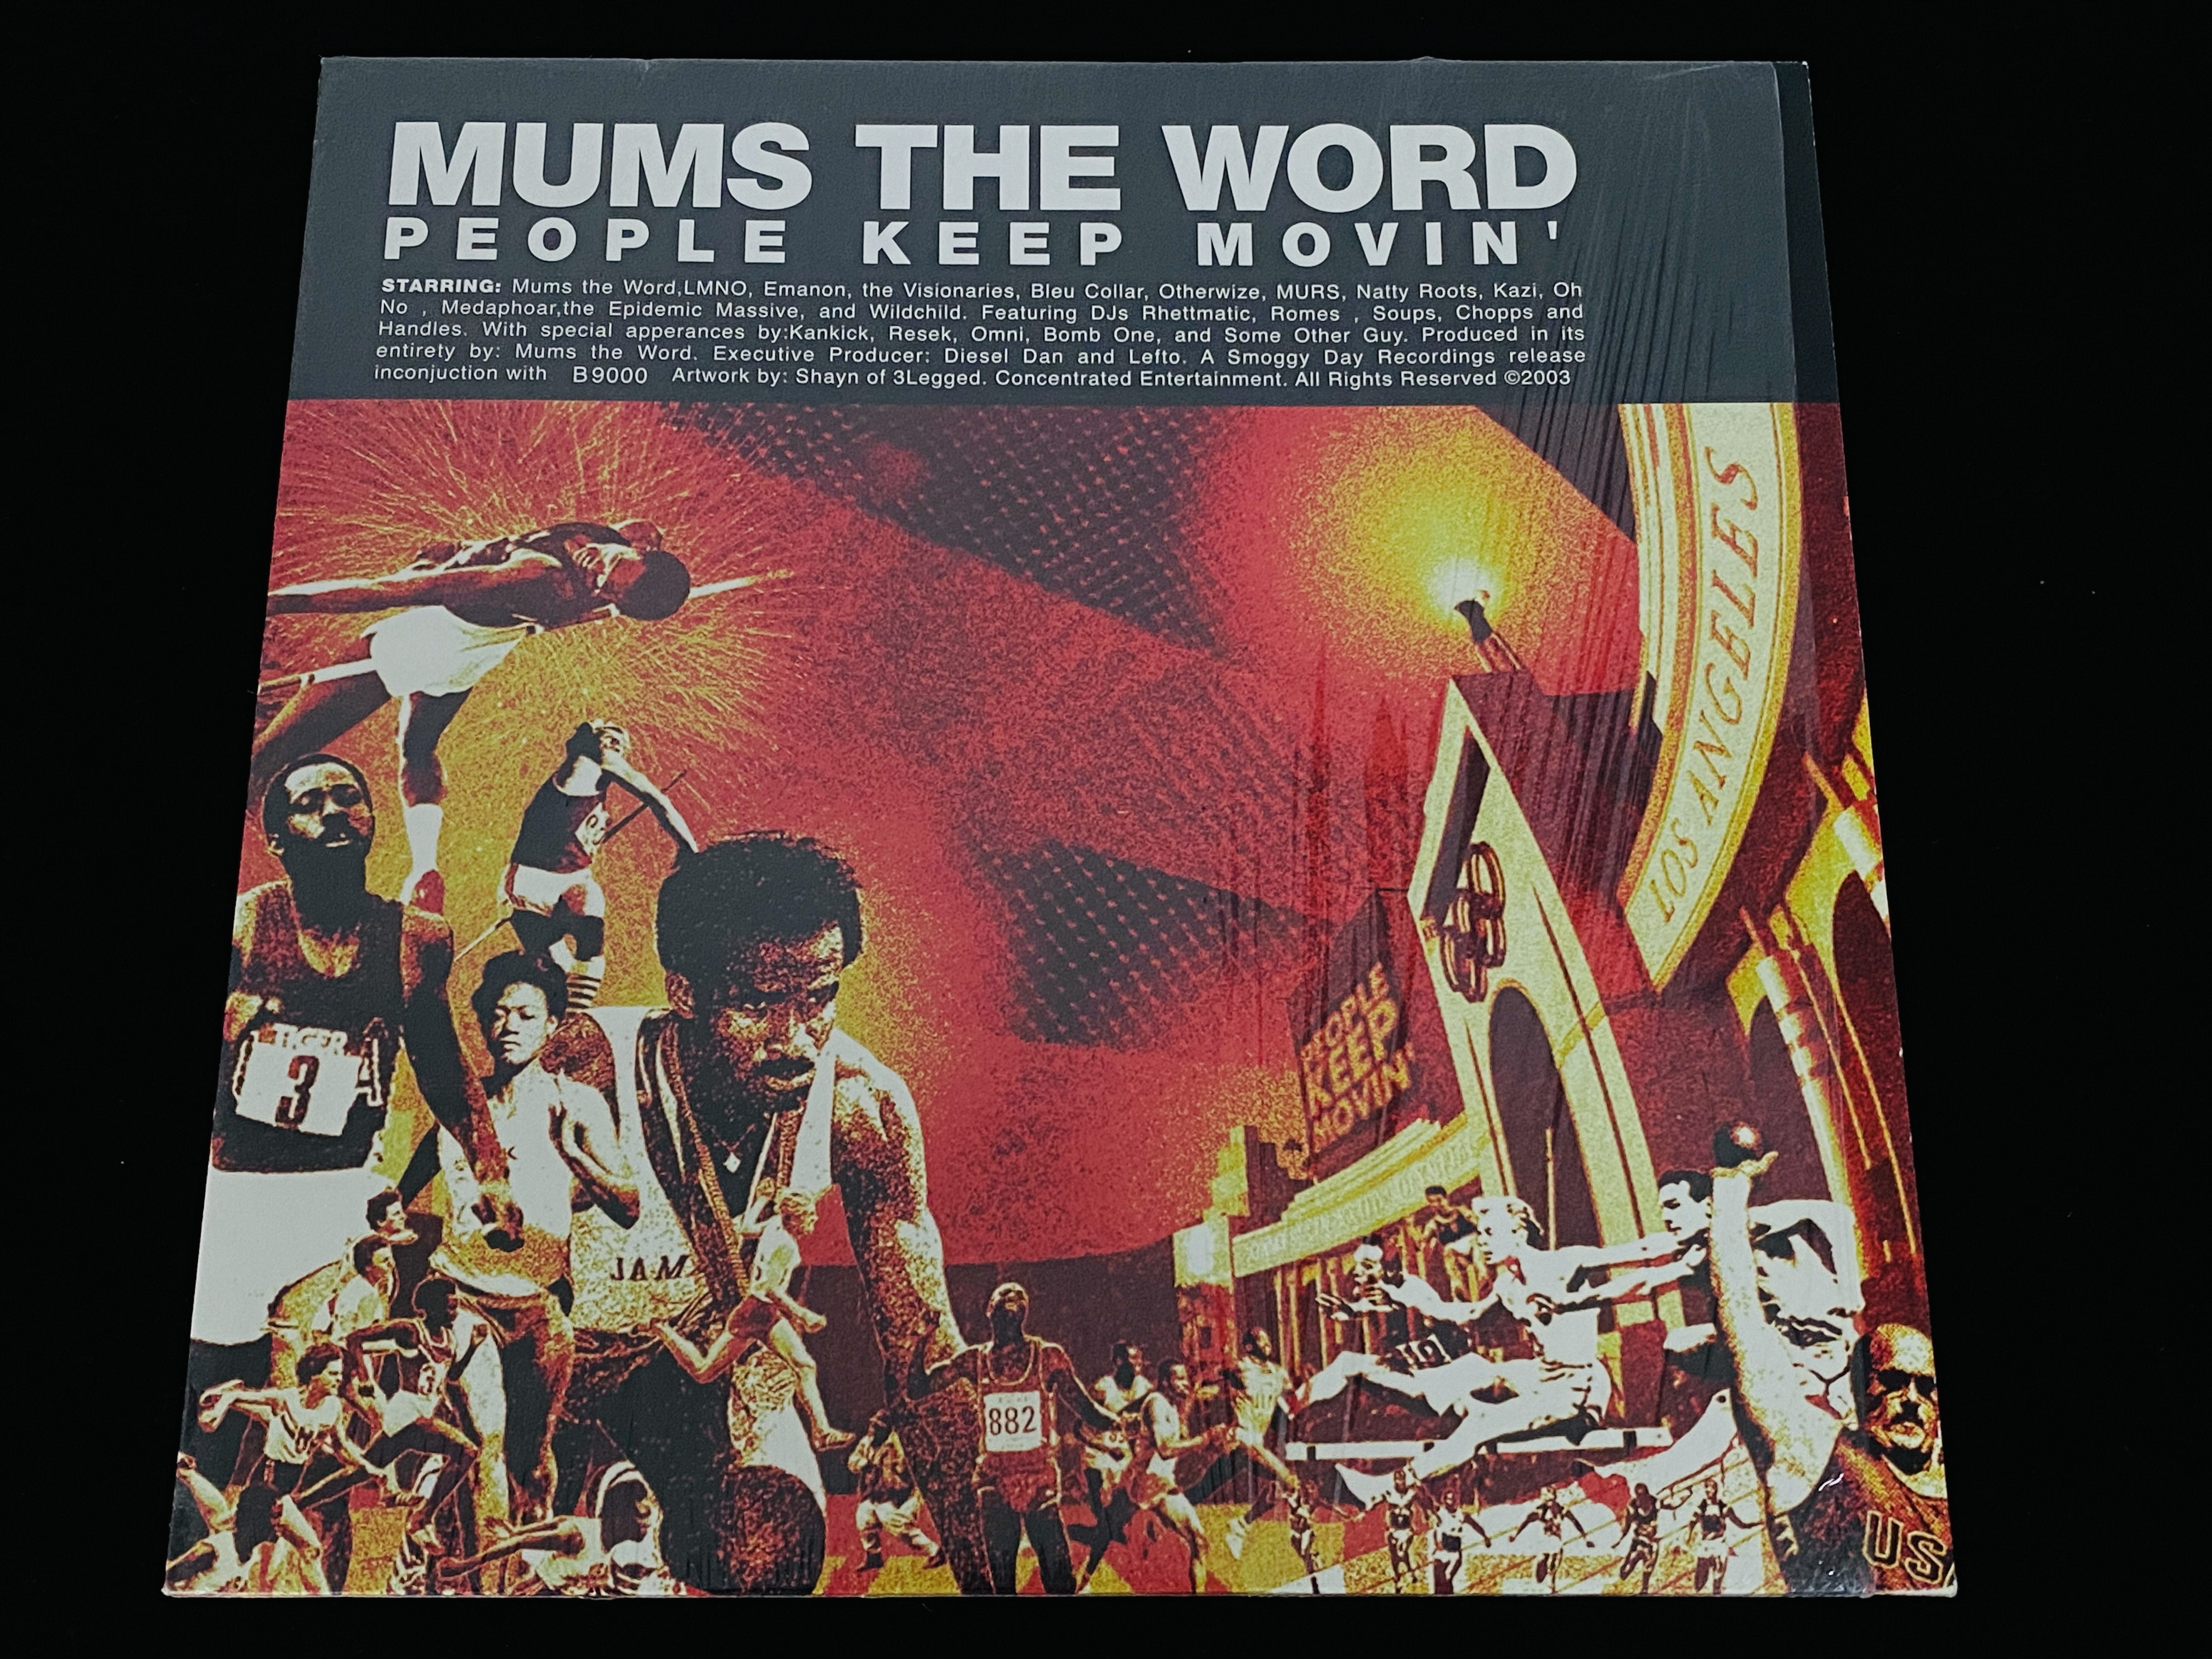 Mums The World - People Keep Movin' (DE, 2003)